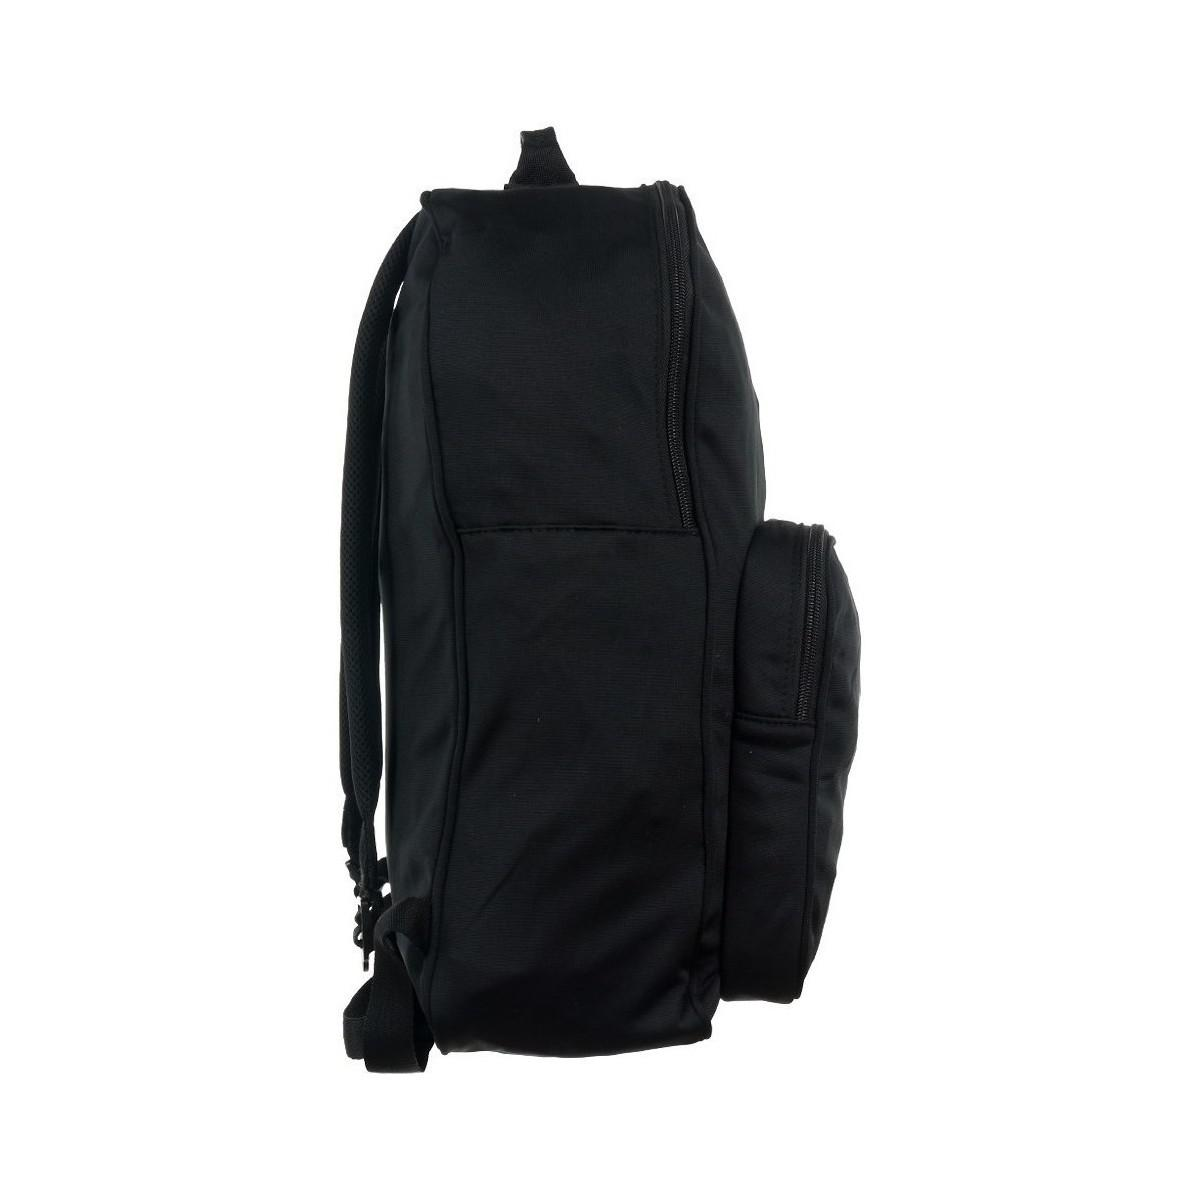 e3cd6b99dab4 Adidas Originals Classic Tricot Men s Backpack In Black in Black for ...